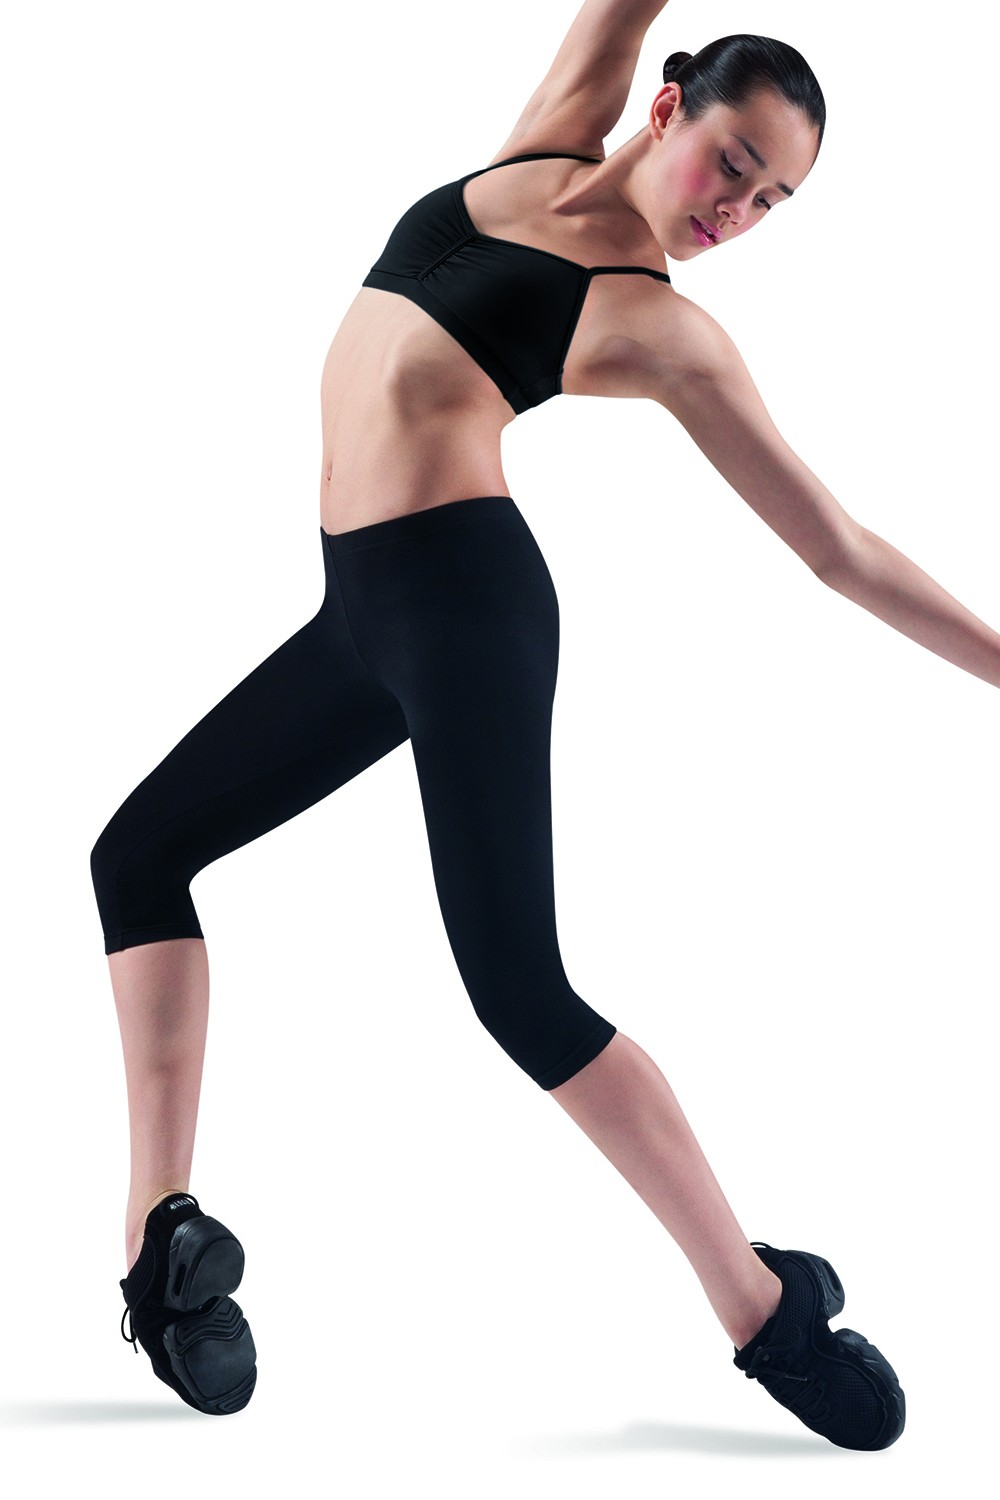 Okeanos Dritex Leggings Women's Dance Pants